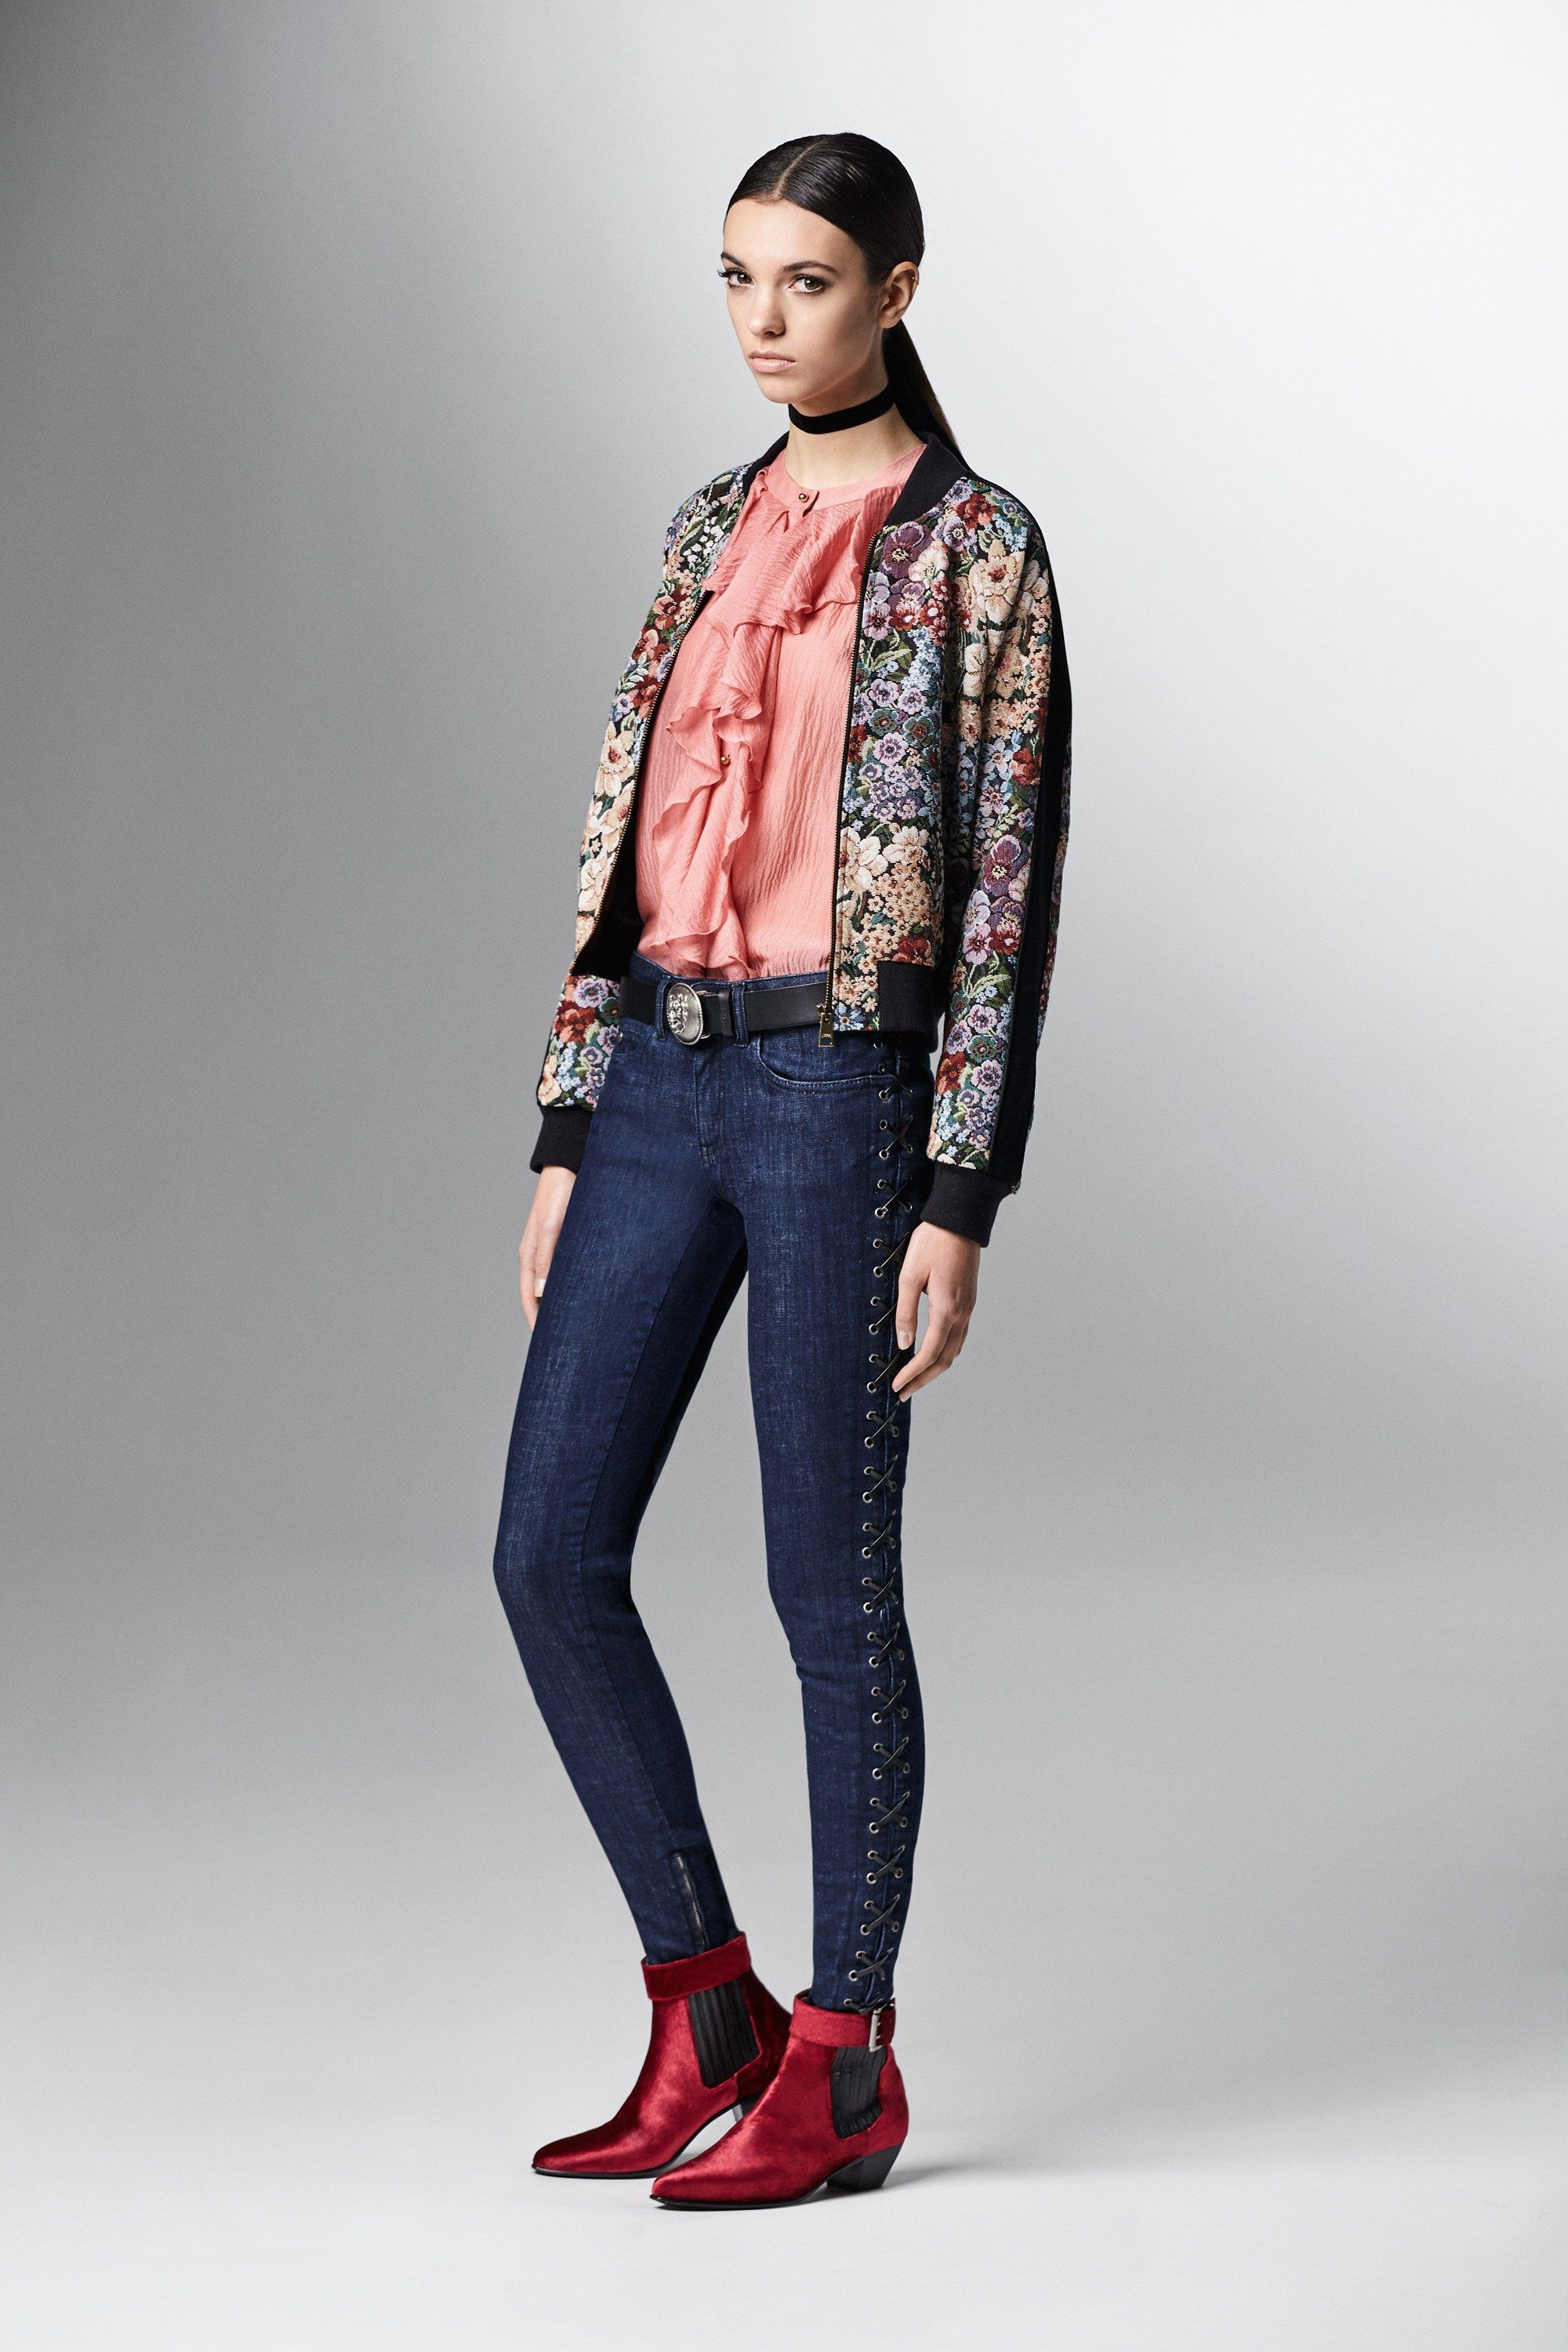 Just Cavalli Pre-Fall 2017 Collection